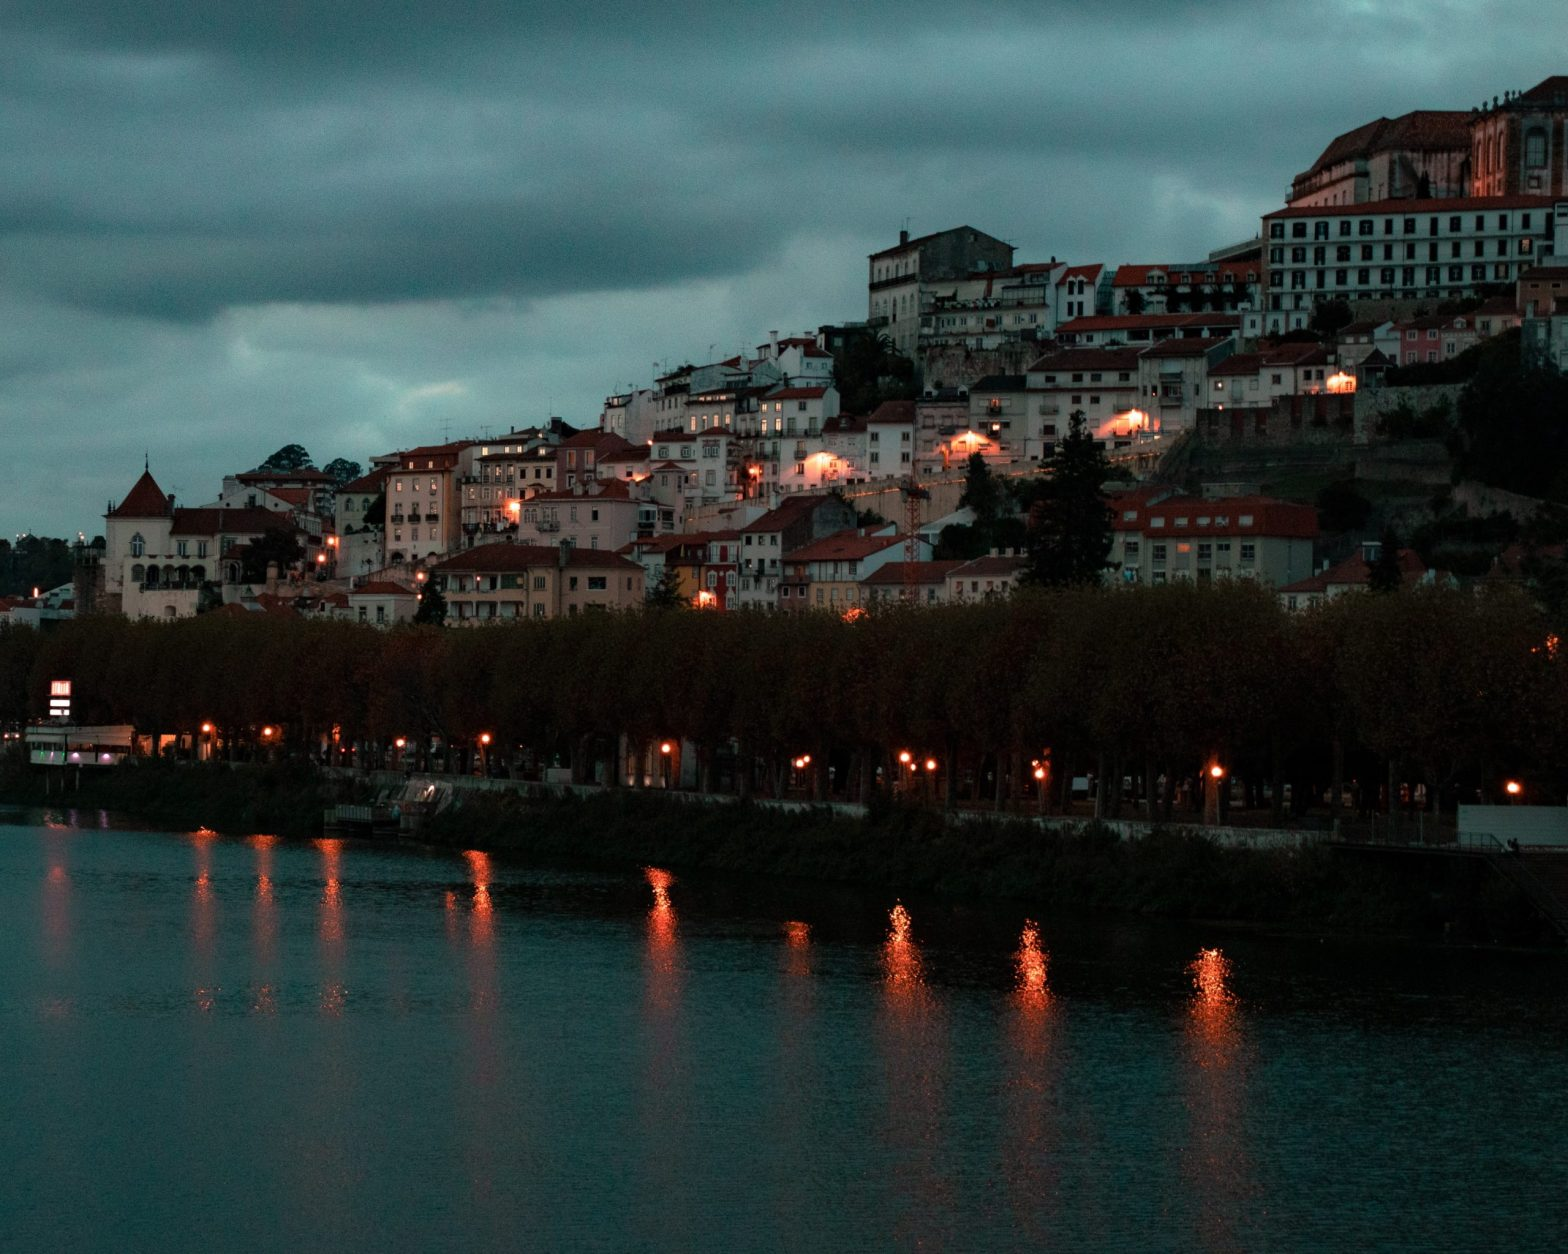 Seaside of Coimbra at night with lights on